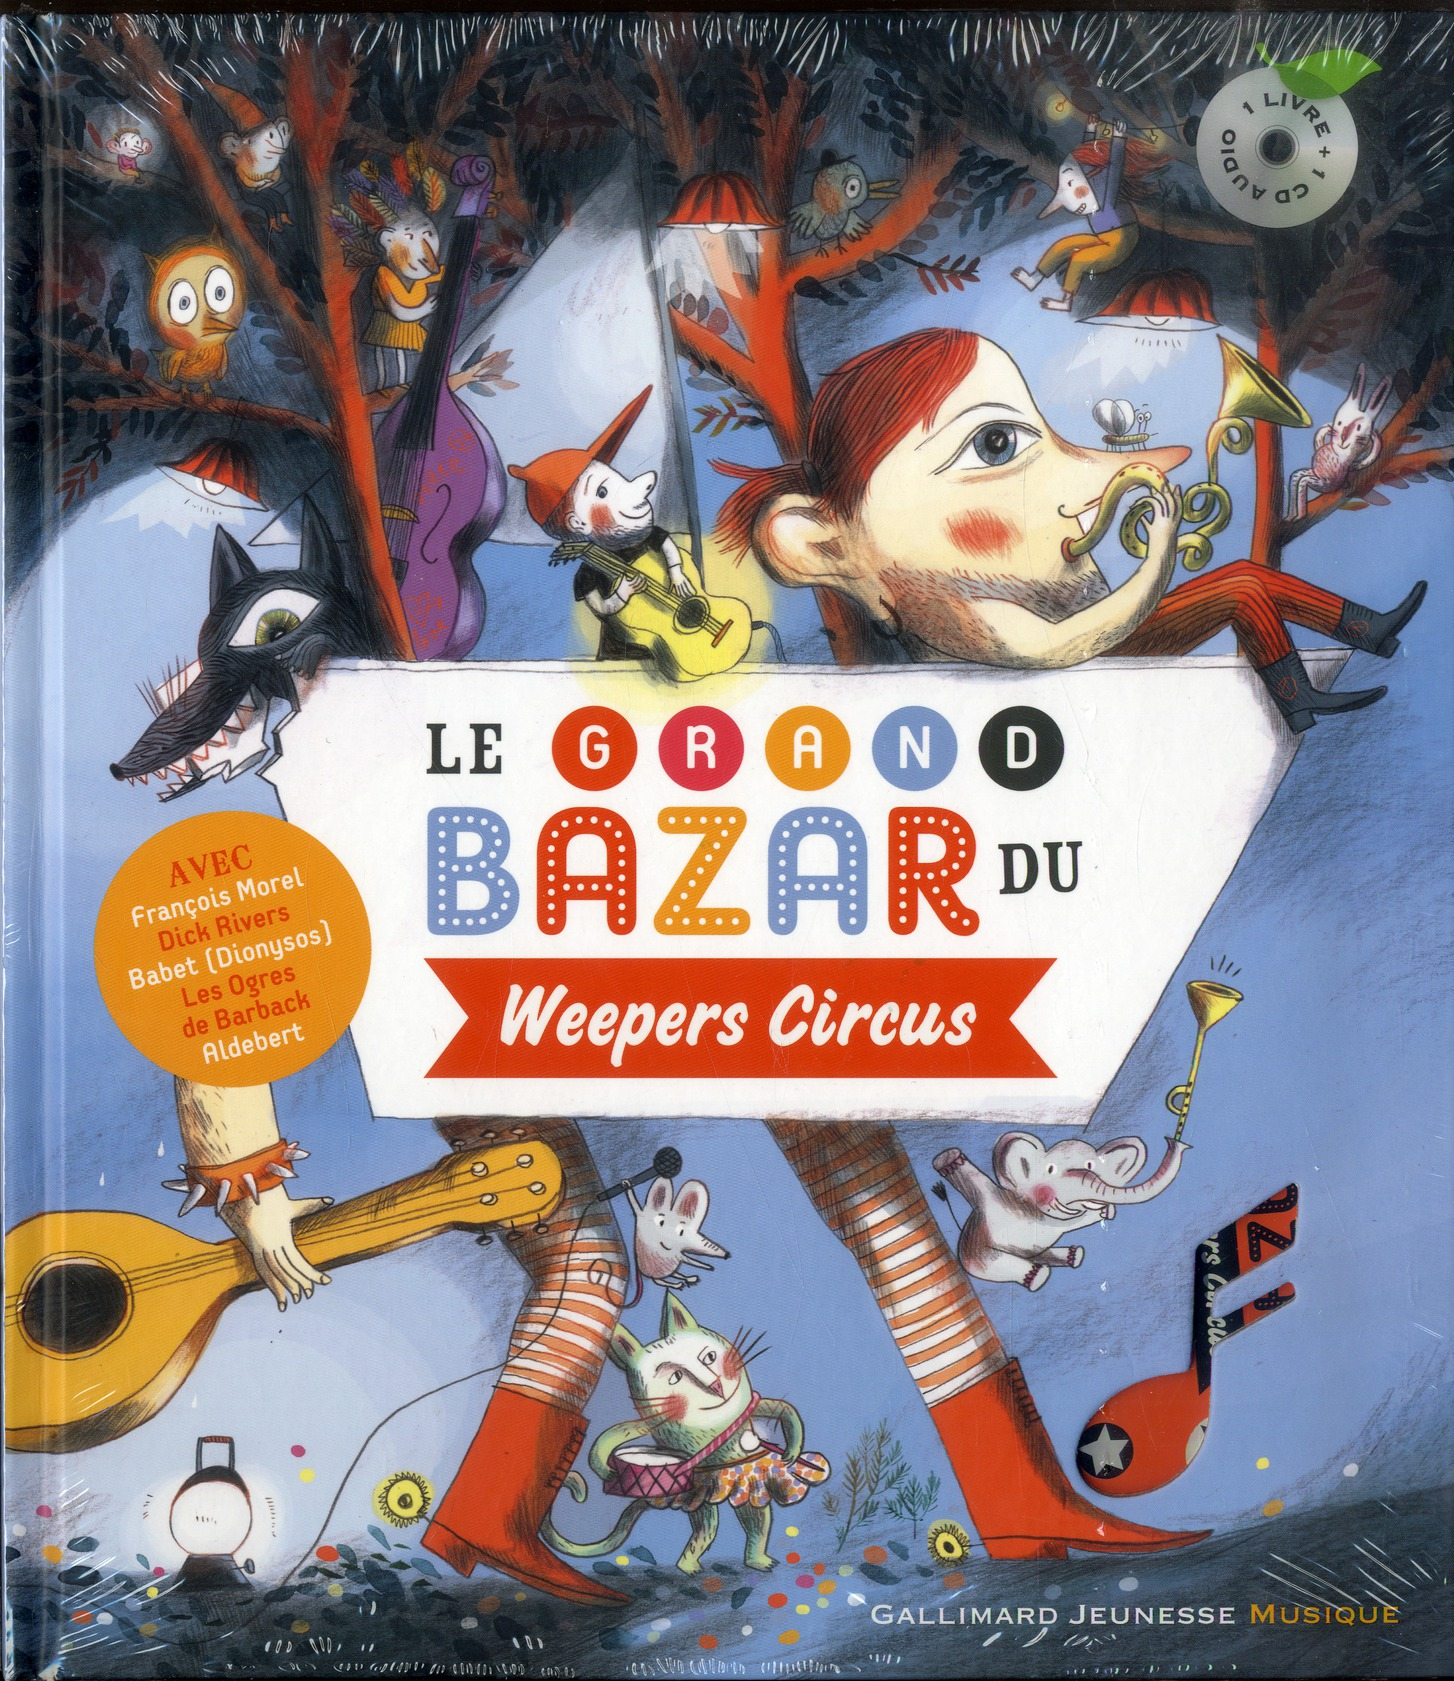 LE GRAND BAZAR DU WEEPERS CIRCUS